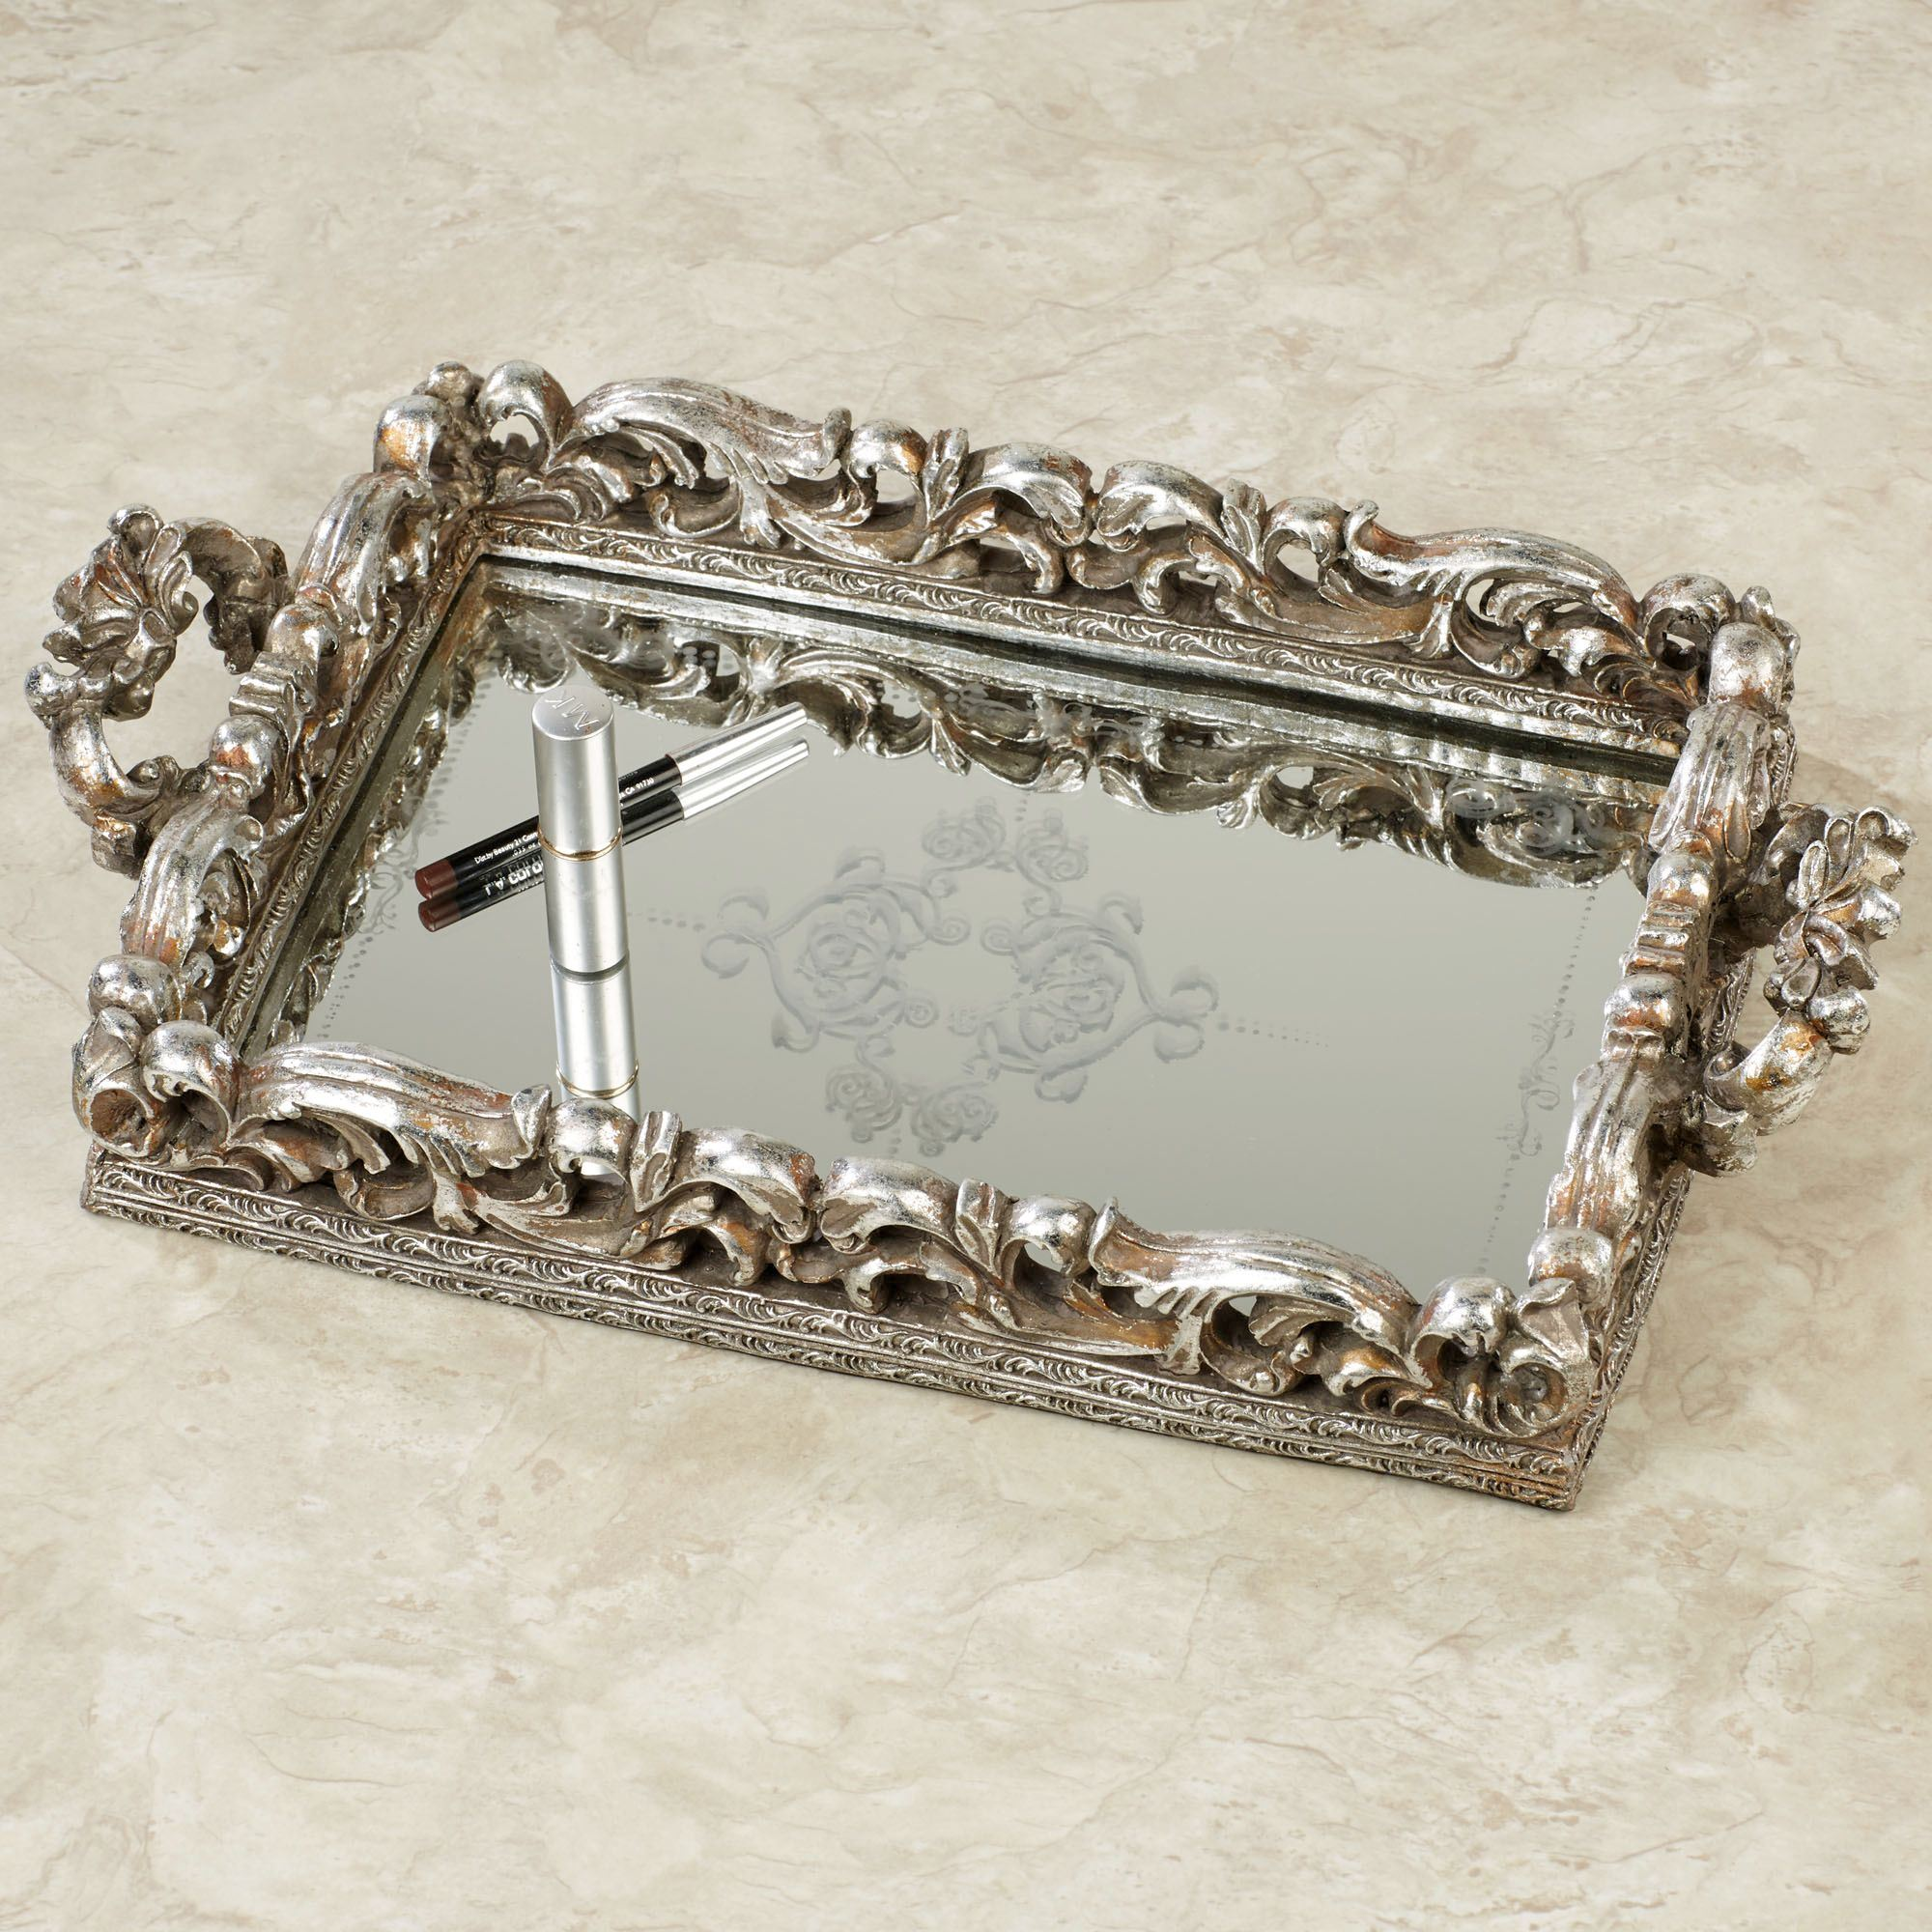 sasha decor home joss main reviews tray vanity mirrored pdp